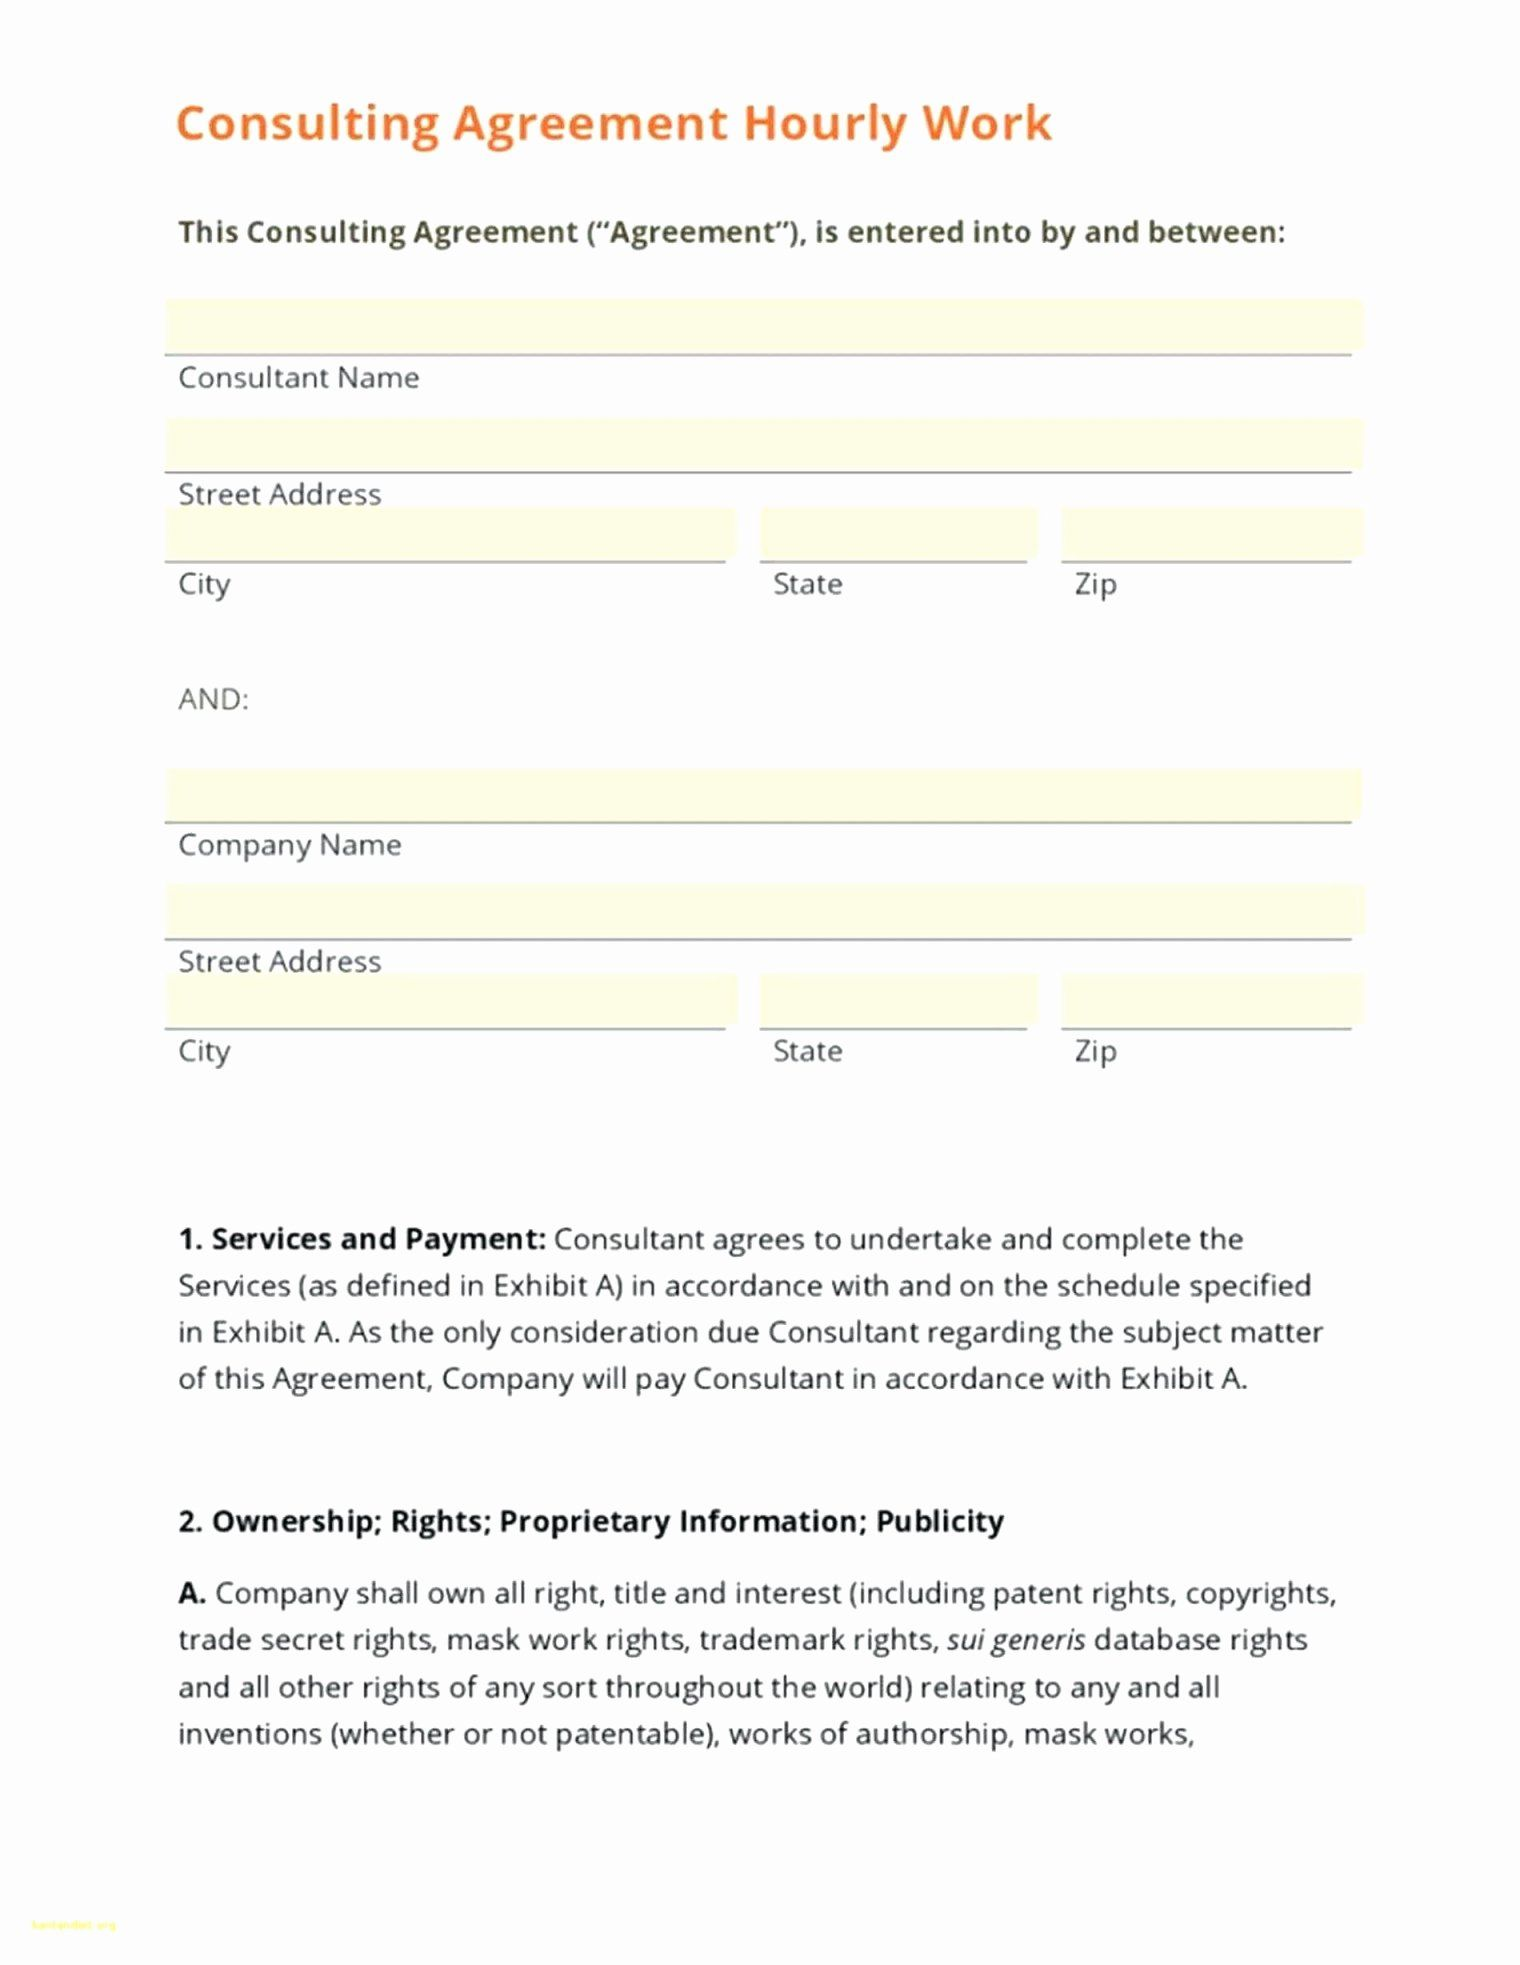 Short Consulting Agreement Template Lovely Consulting Agreement Template Fillable Short Form Templates Web Design Contract Agreement